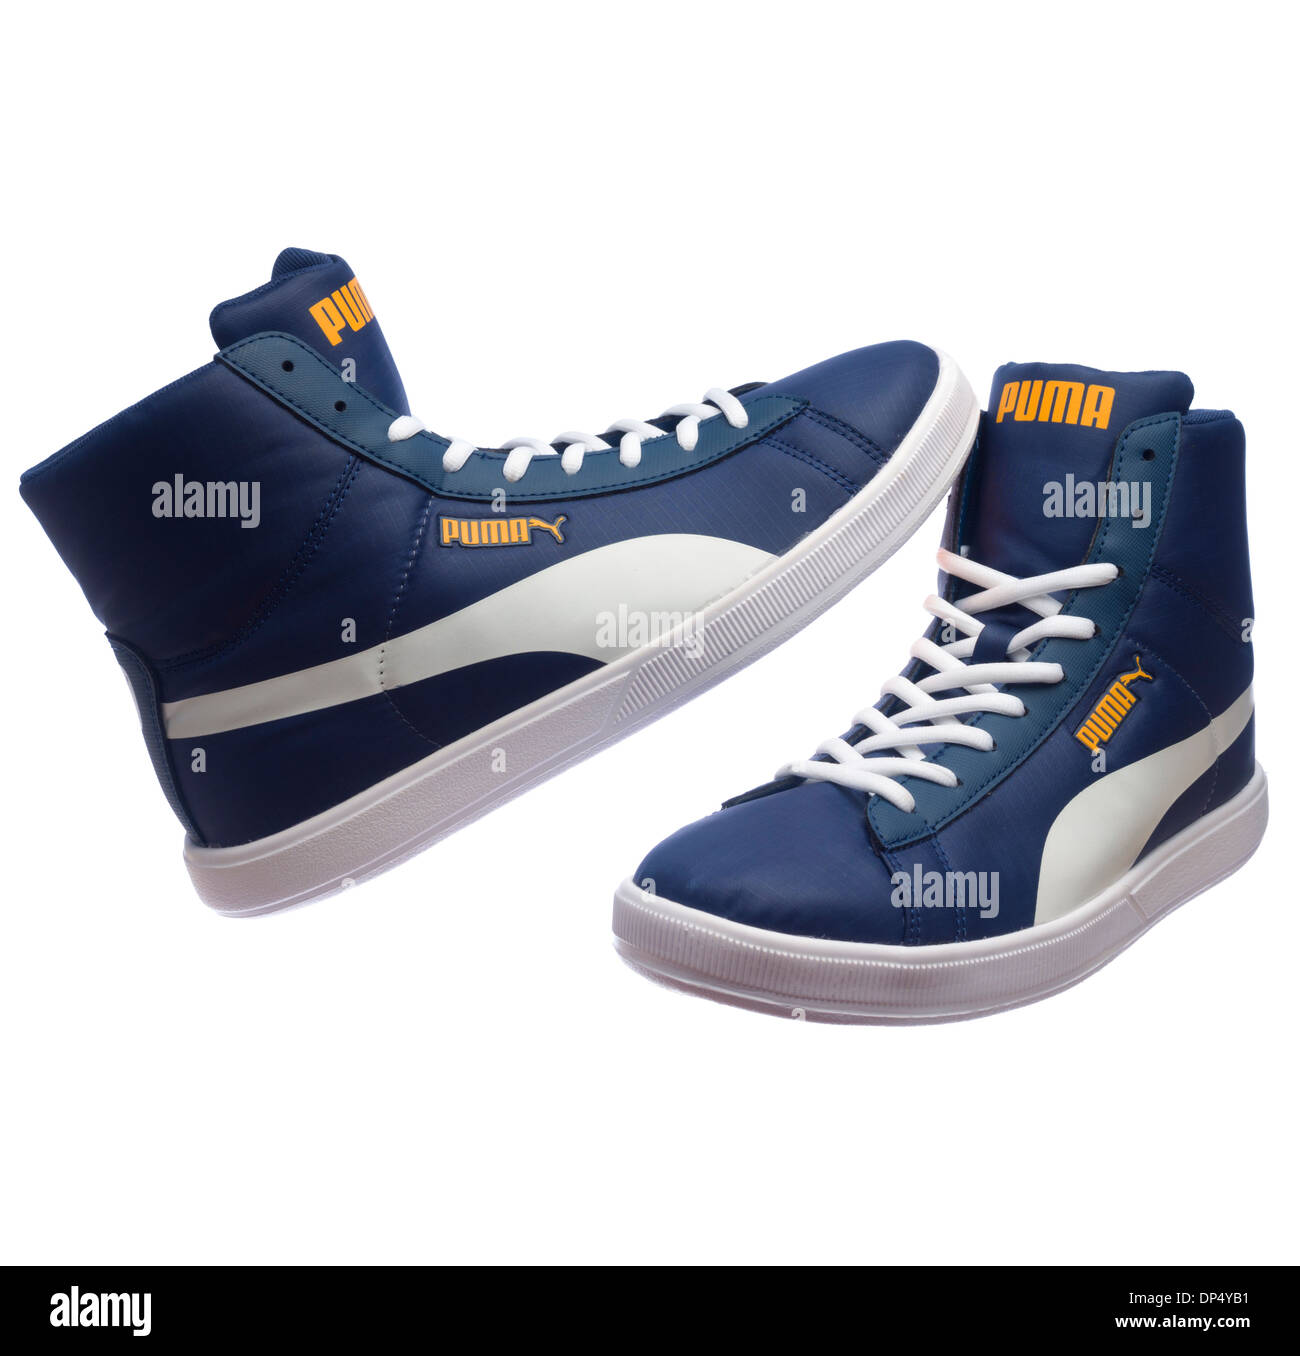 Alamy Puma amp; Photos Shoes Images g11WTcIwq